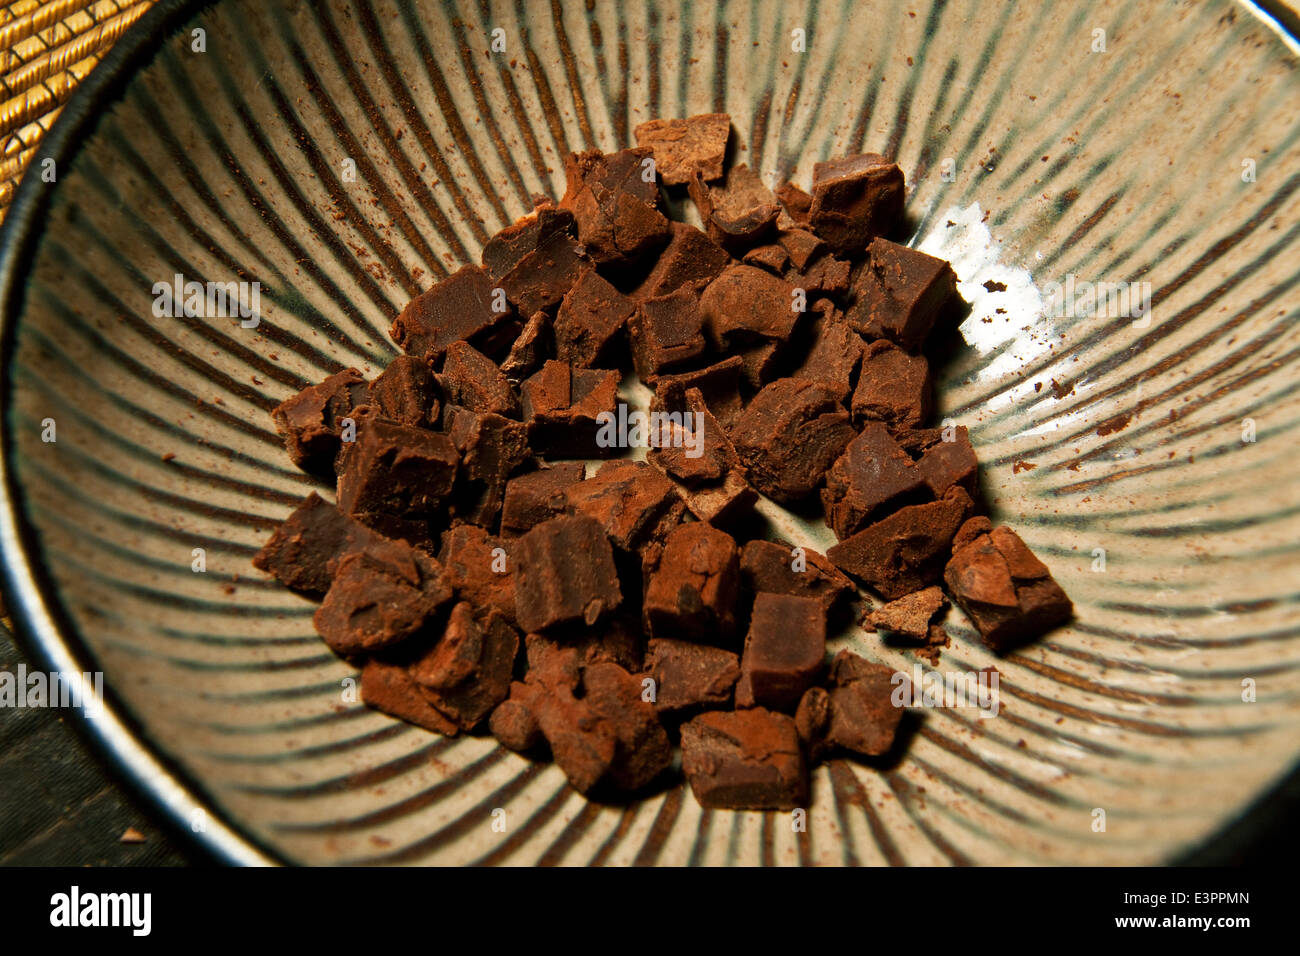 Closeup of rich organic dark chocolate tester in a rustic bowl min tasters. - Stock Image